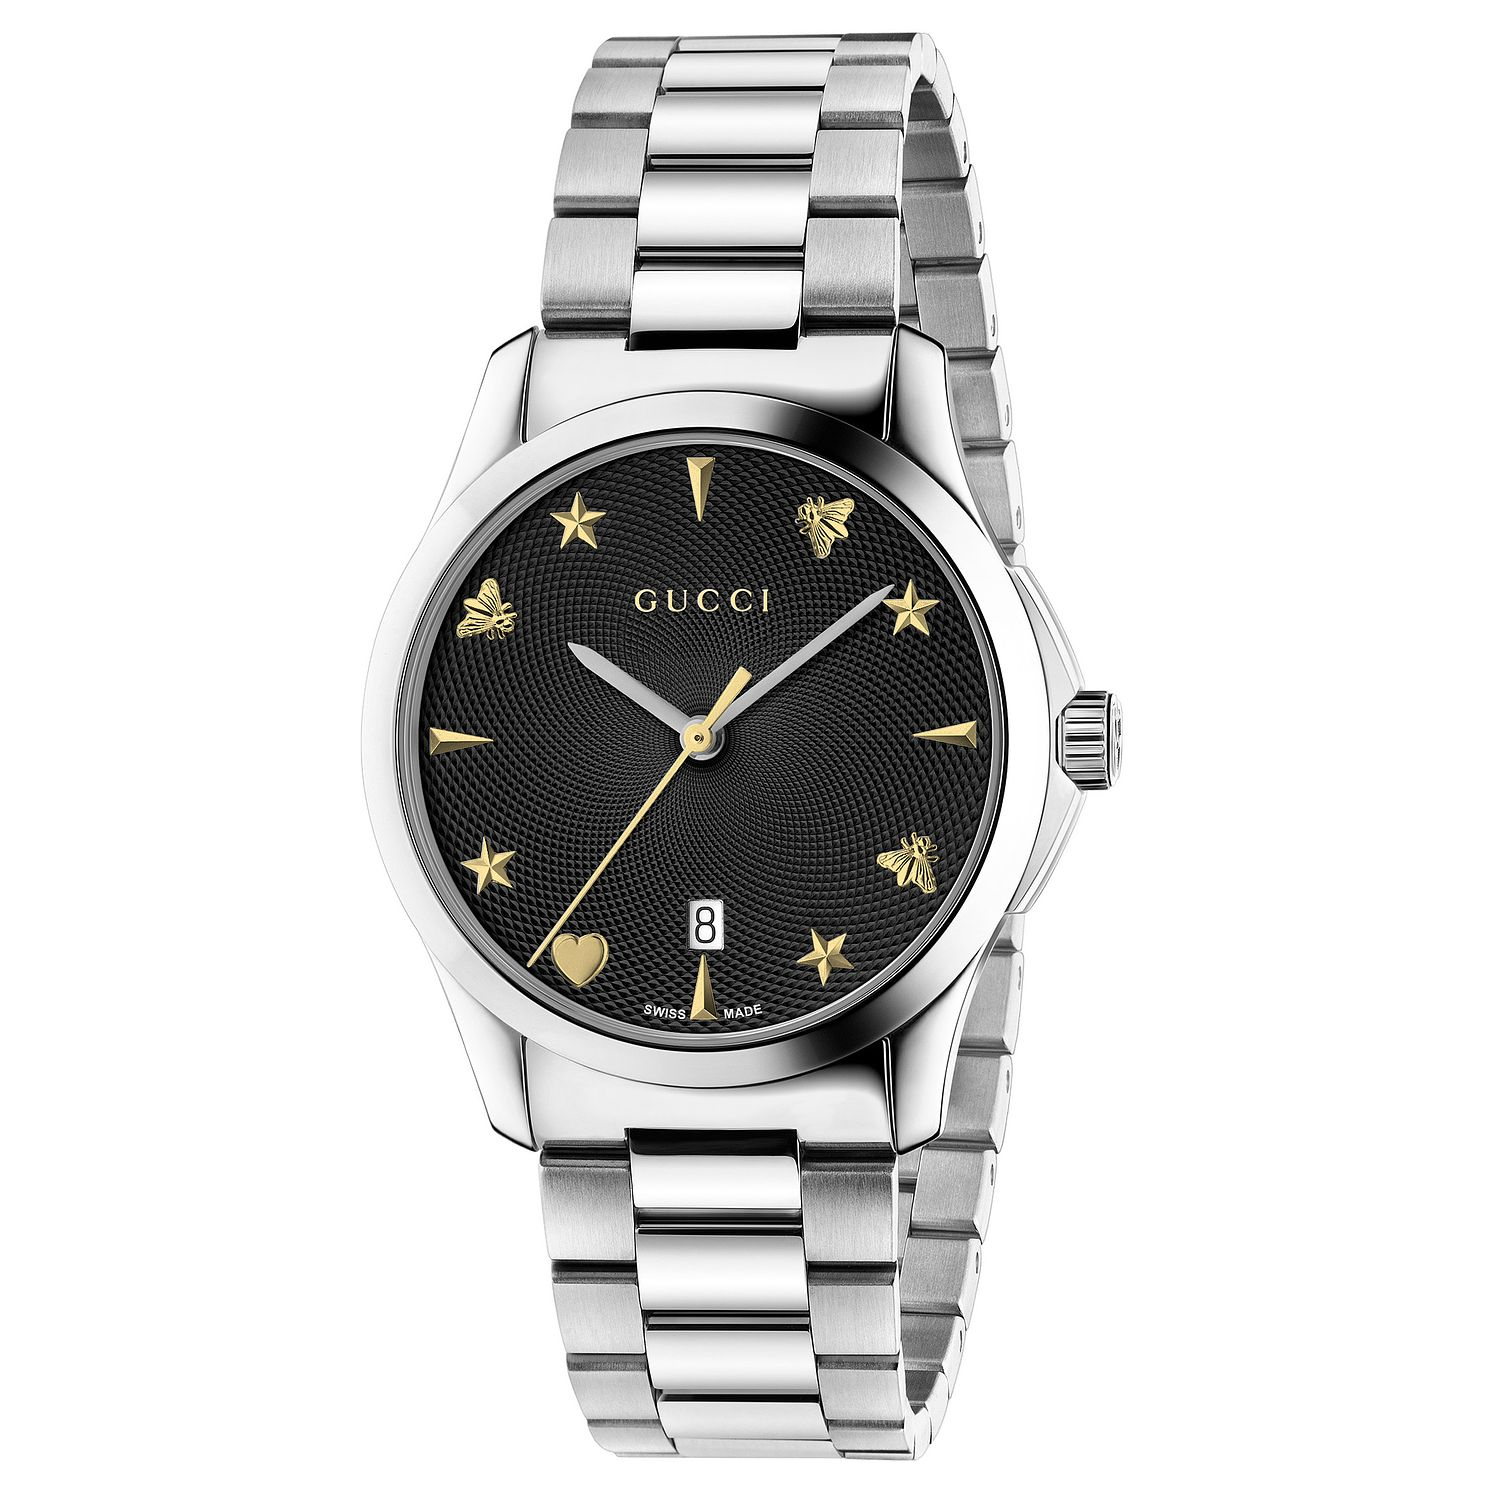 Gucci G-Timeless Stainless Steel Bracelet Watch - Product number 6382517